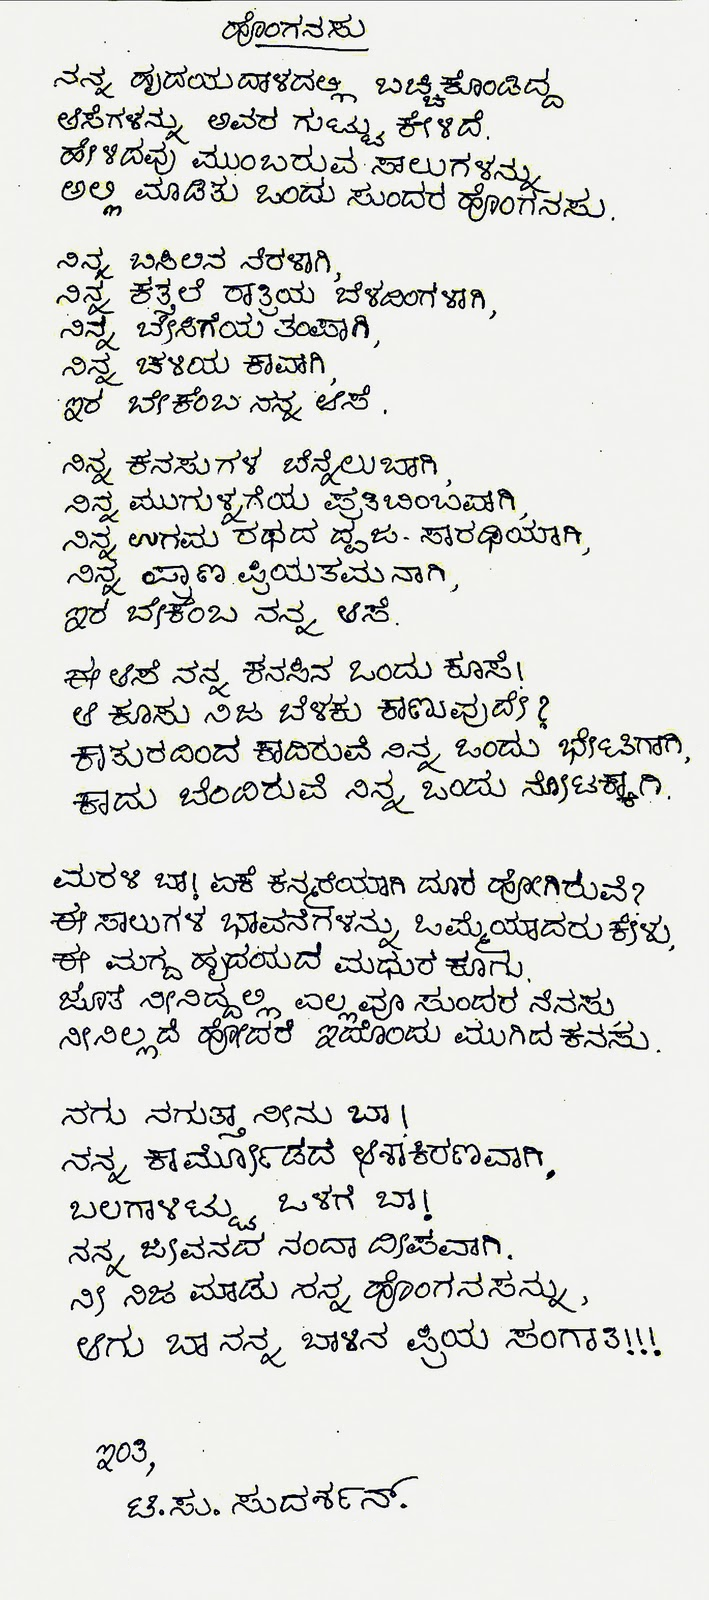 sundara c and kushboo relationship poems